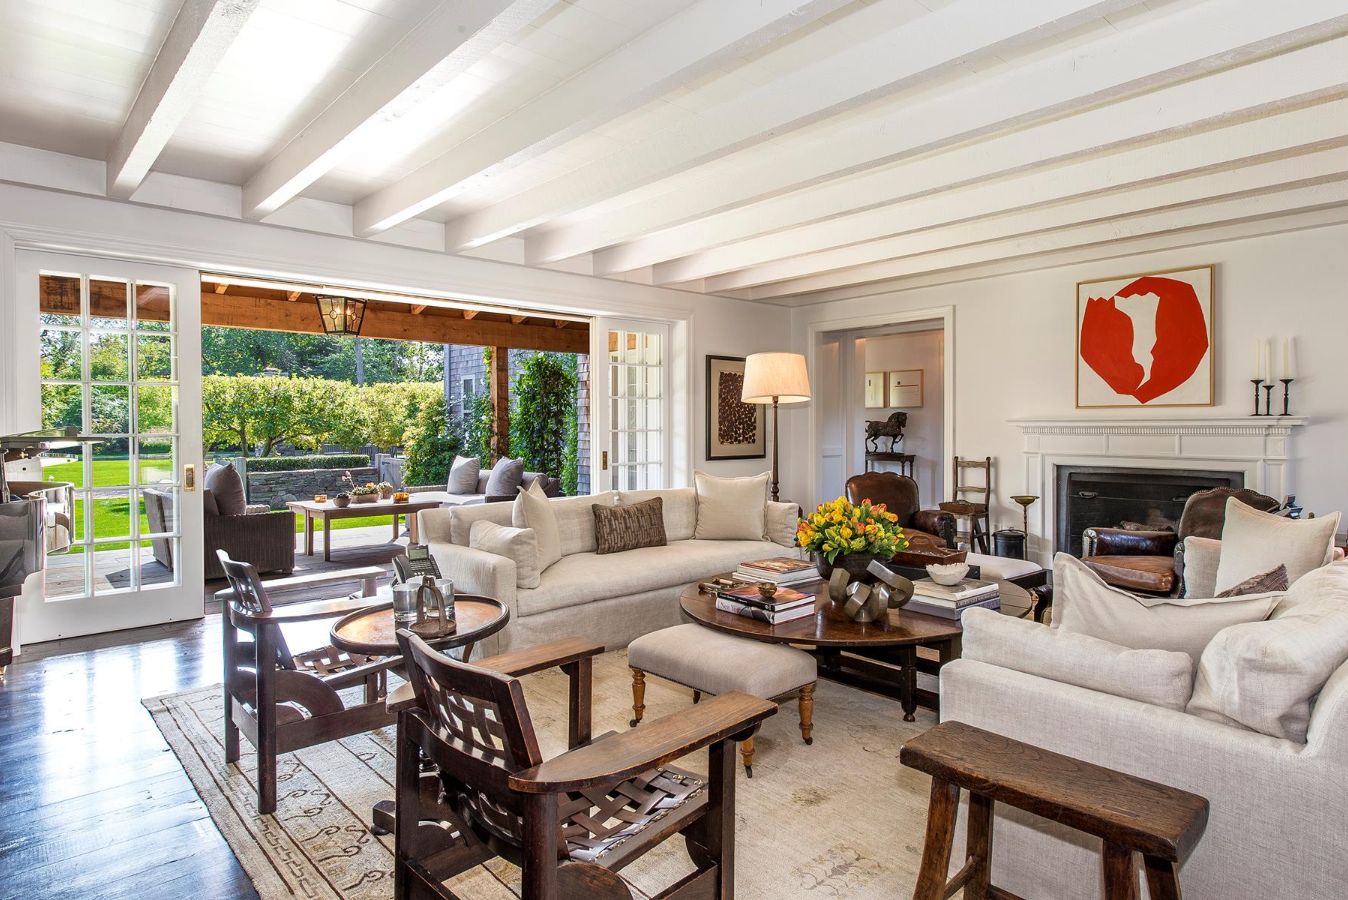 hamptons home beyoncé almost rented gets second price cut in five